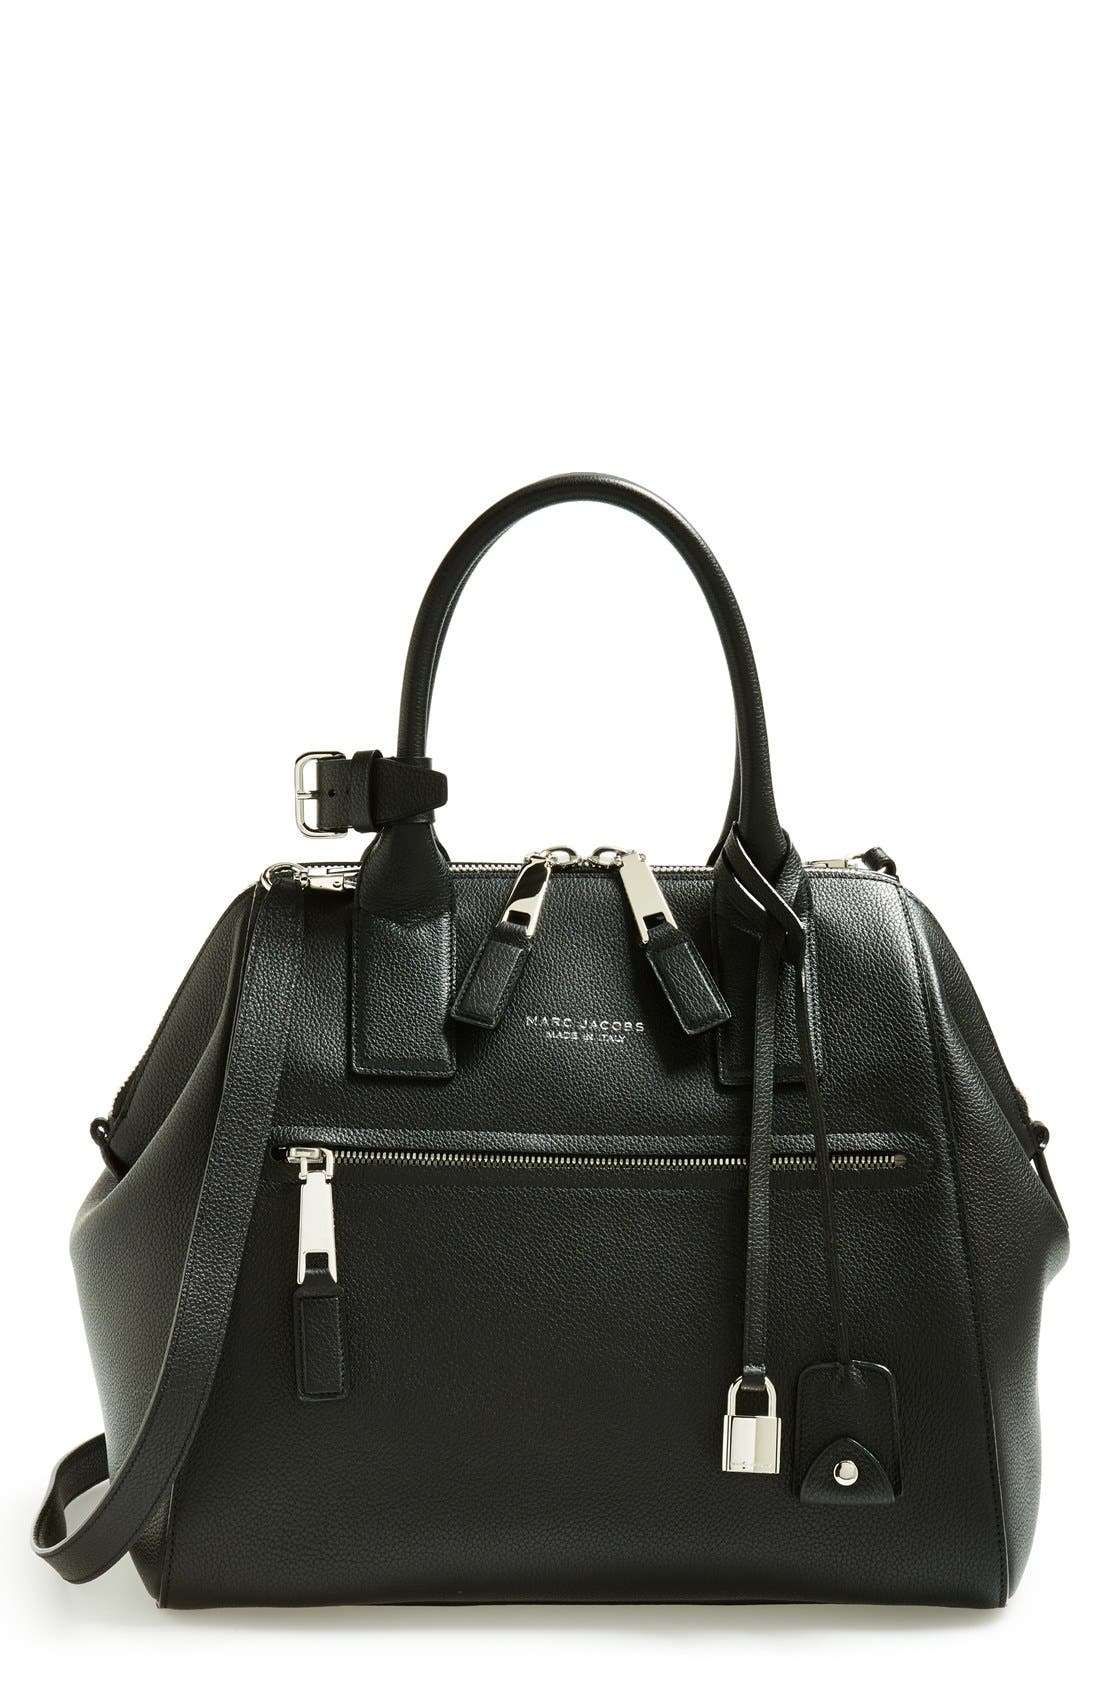 Main Image - MARC JACOBS 'Large Incognito' Leather Satchel